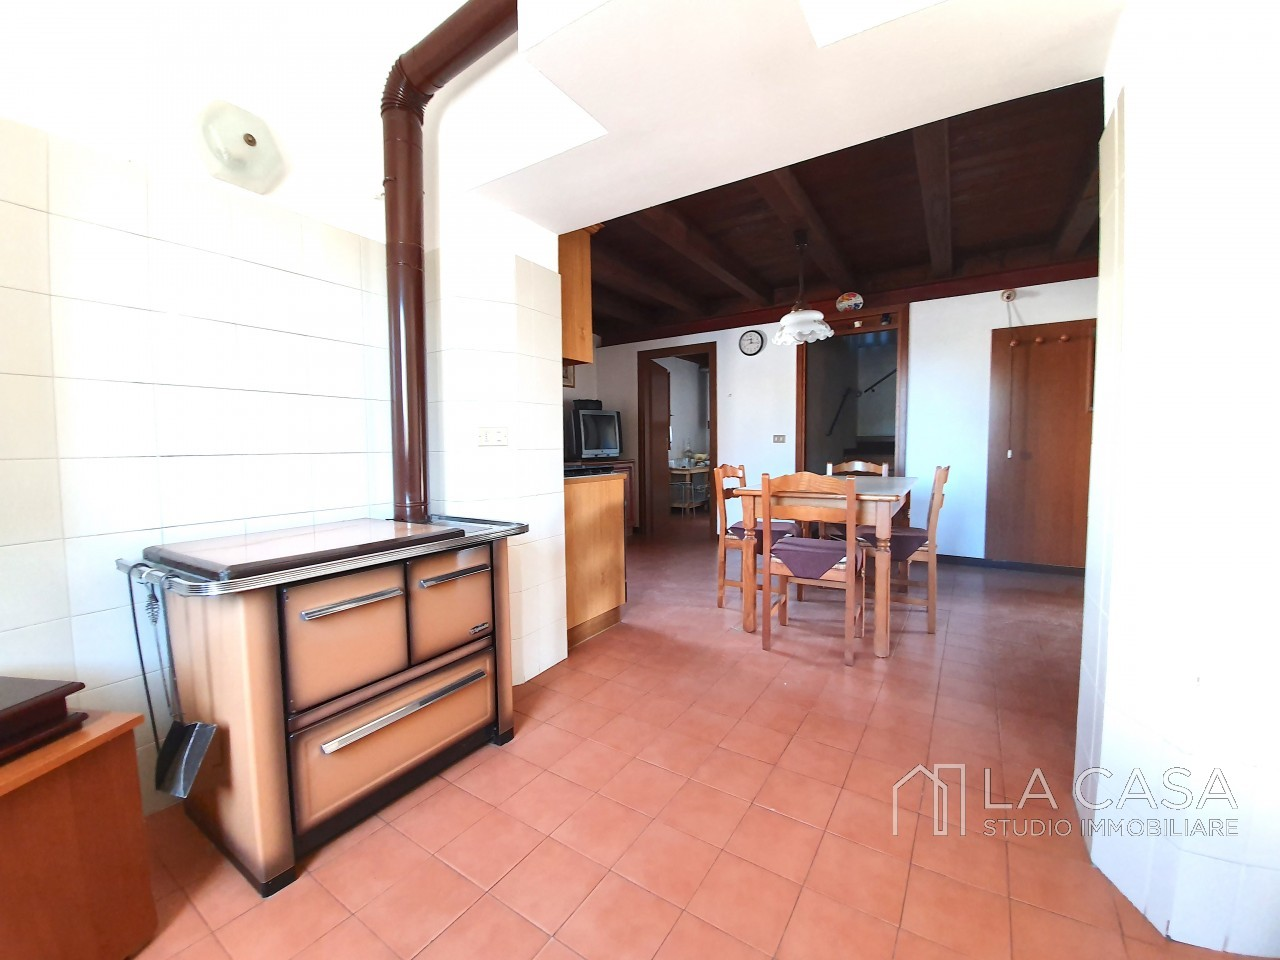 Casa indipendente in Linea - Rif.C6 https://images.gestionaleimmobiliare.it/foto/annunci/191125/2114313/1280x1280/011__20191125_115622_wmk_1.jpg